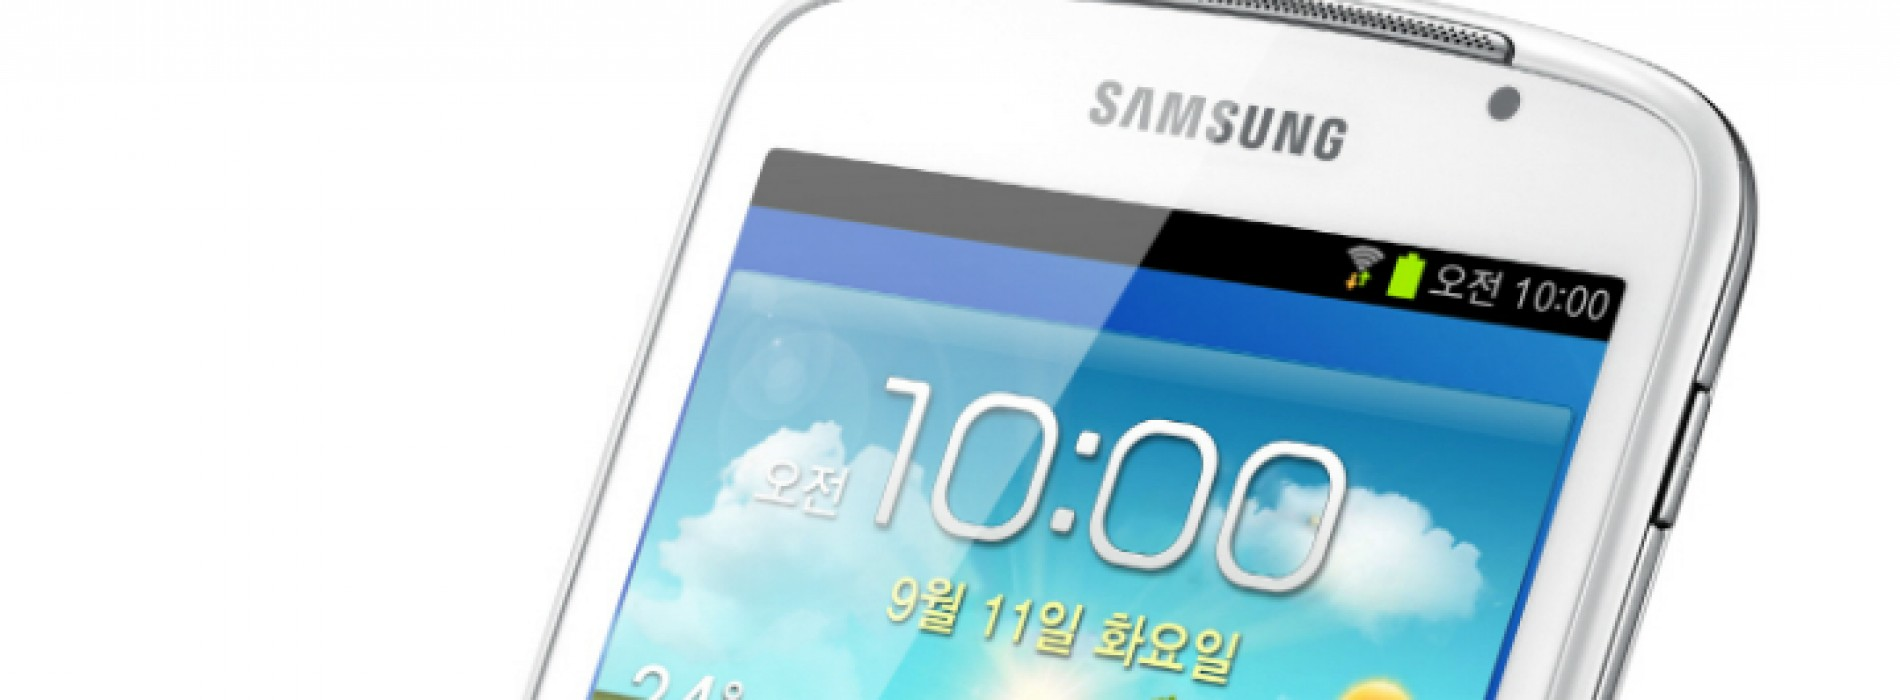 Samsung tied to rumors of 5.8-inch Galaxy Fonblet